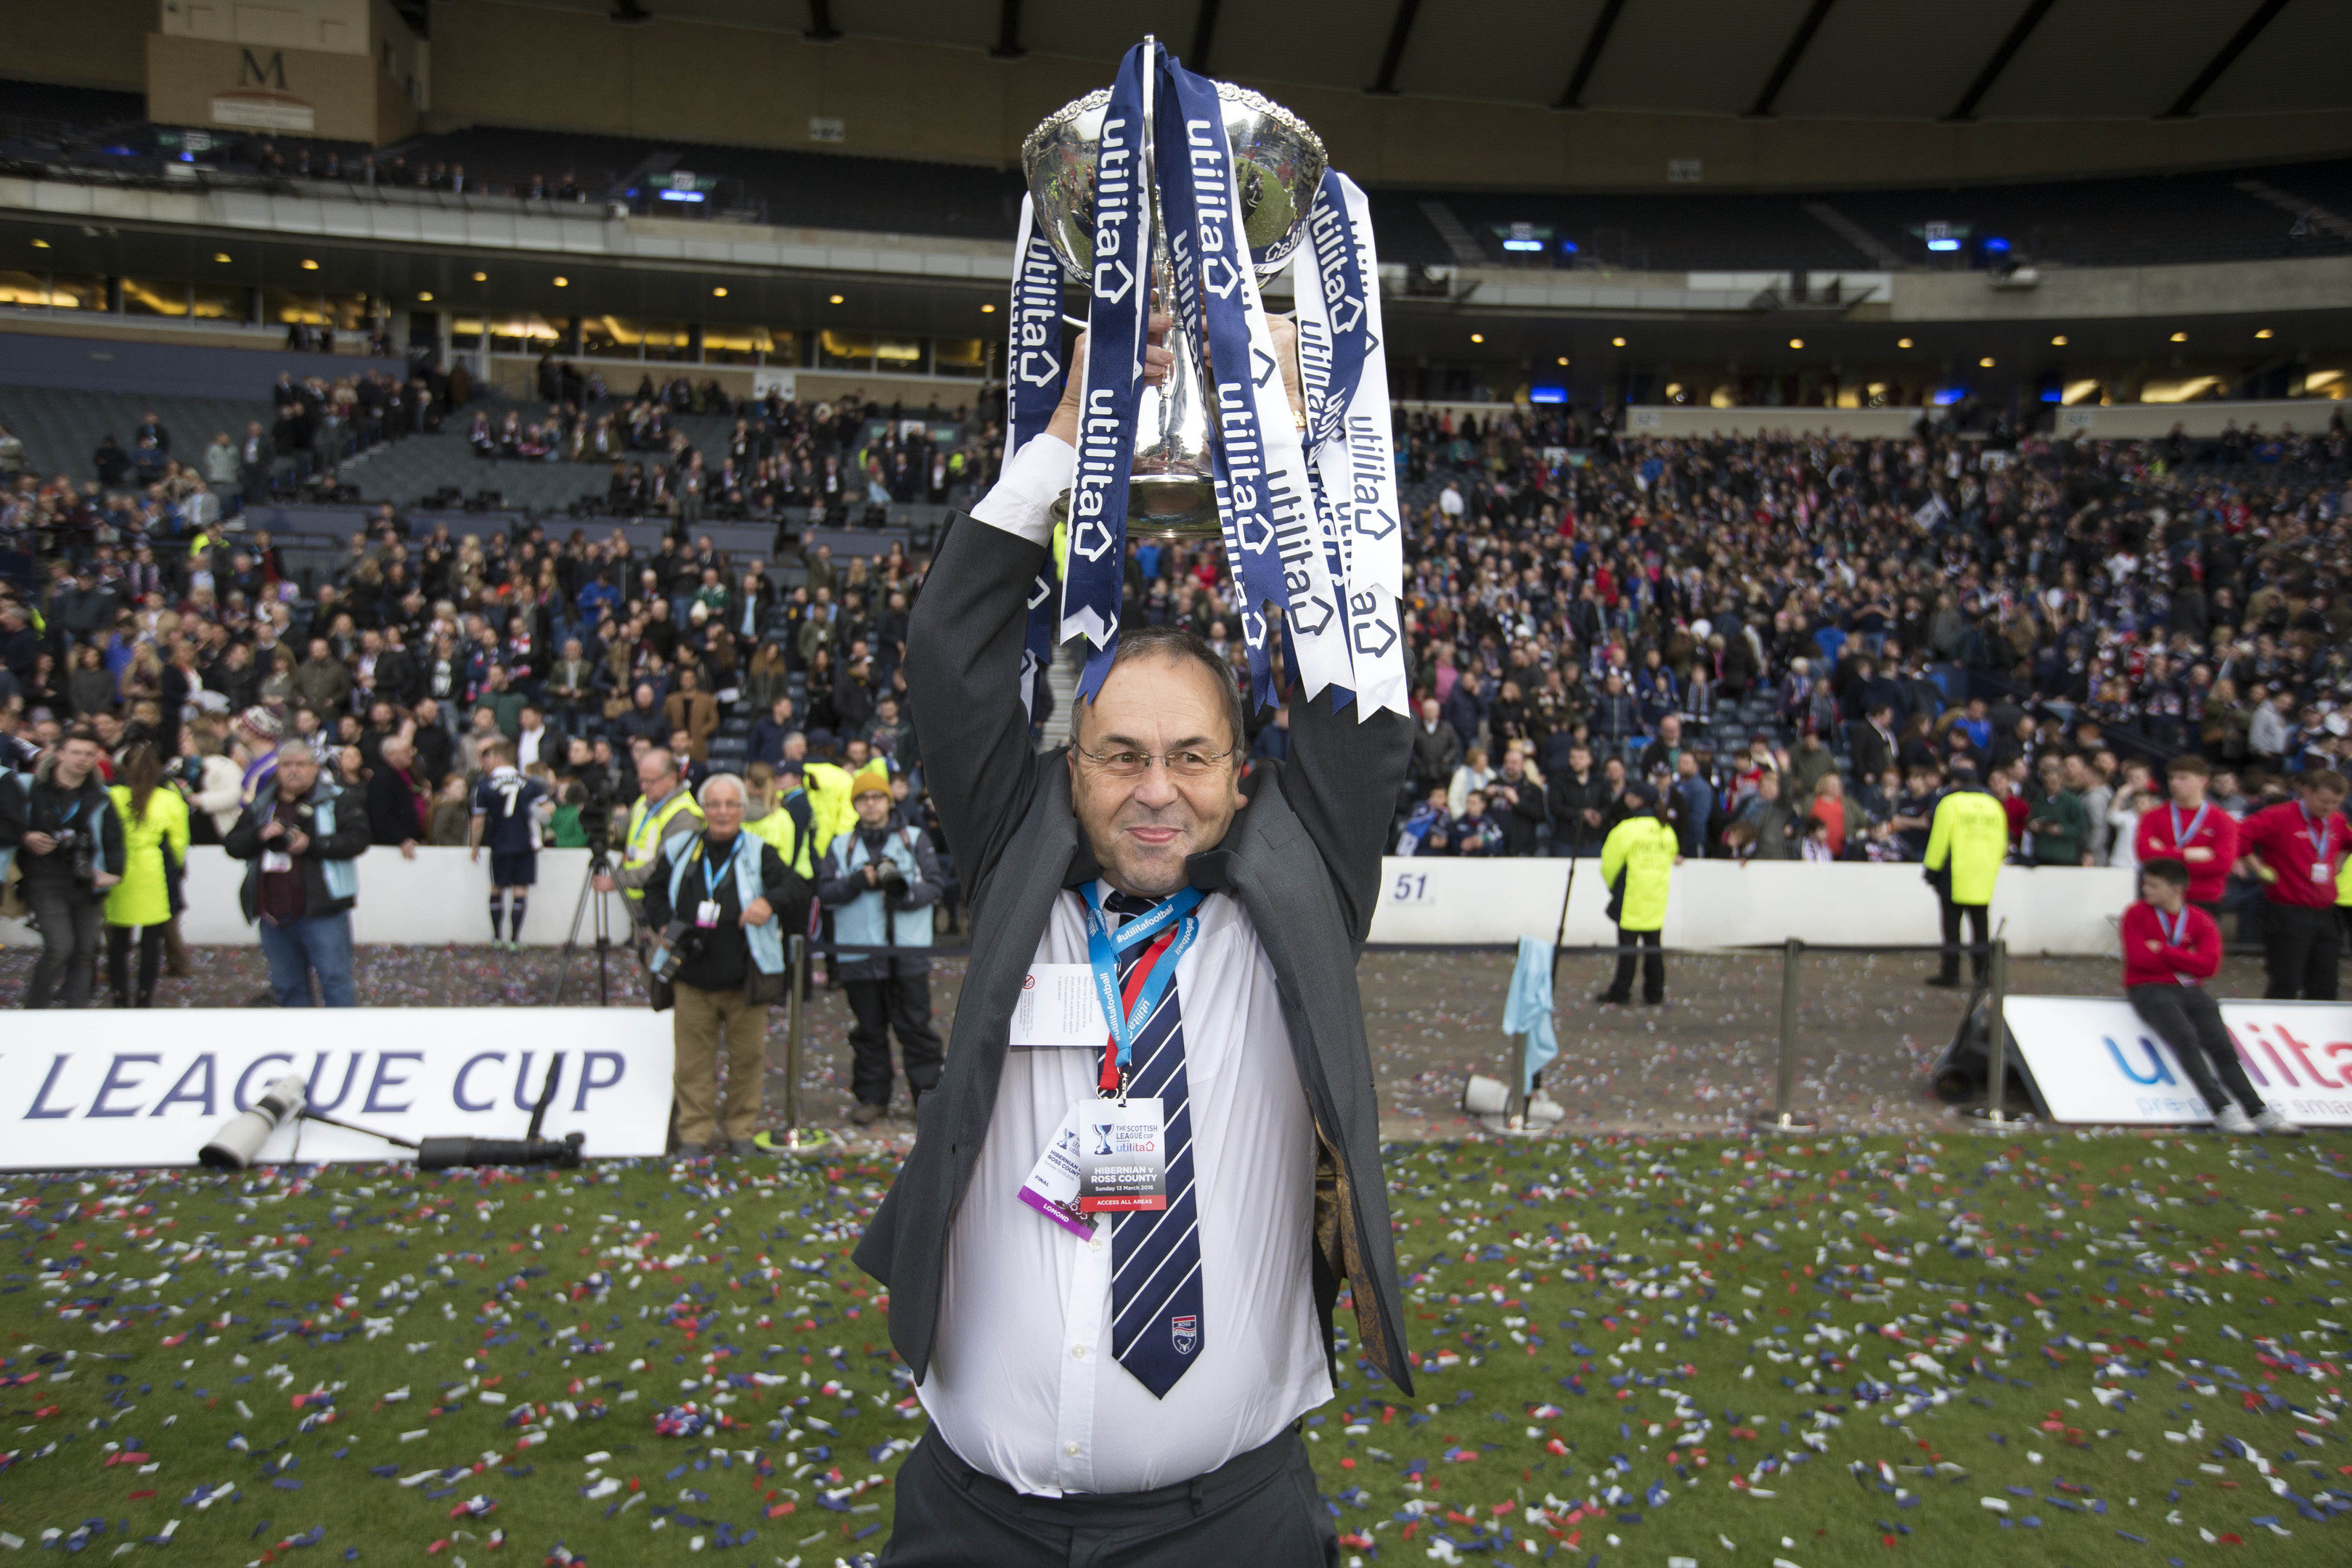 Ross County chairman Roy McGregor celebrates with the trophy after winning the Scottish League Cup Final at Hampden Park, Glasgow (PA)